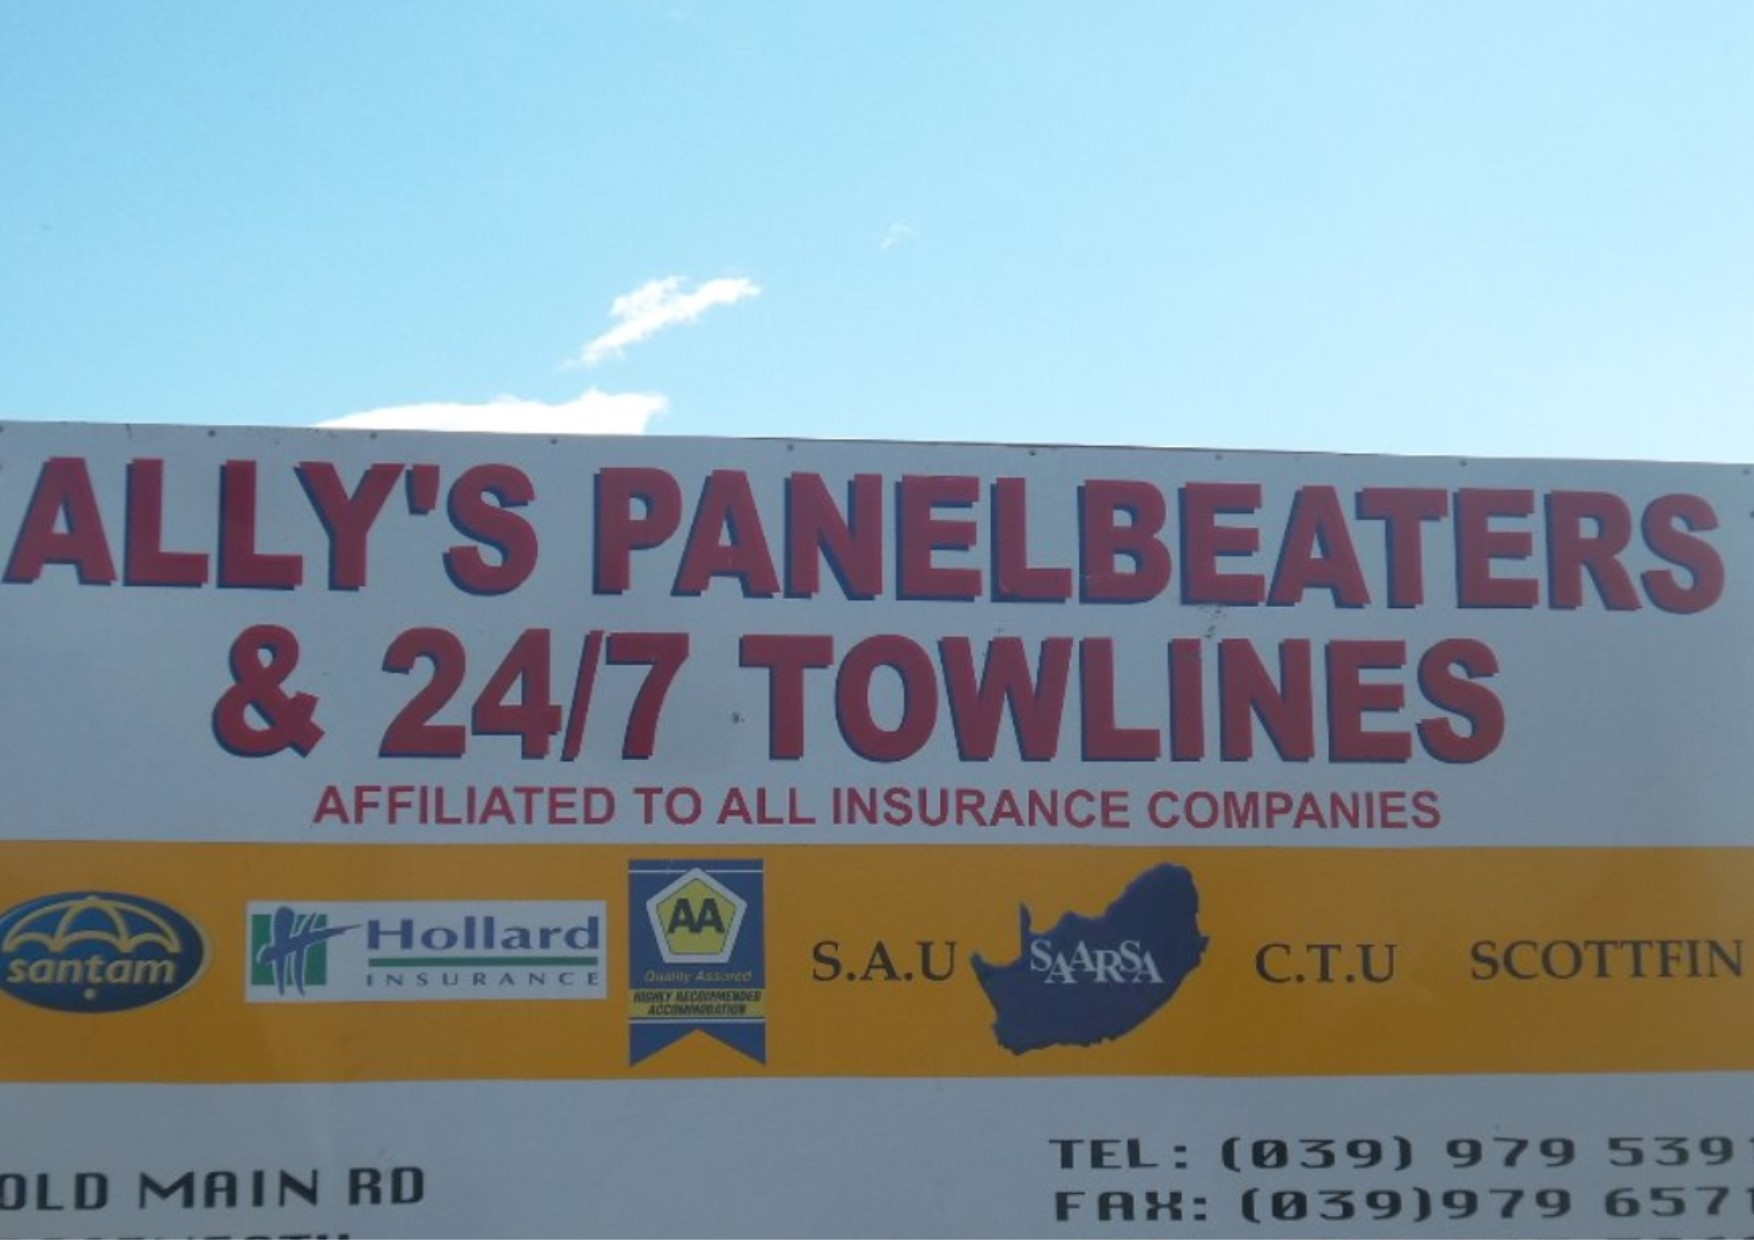 Allys Panelbeaters & 24/7 Towlines